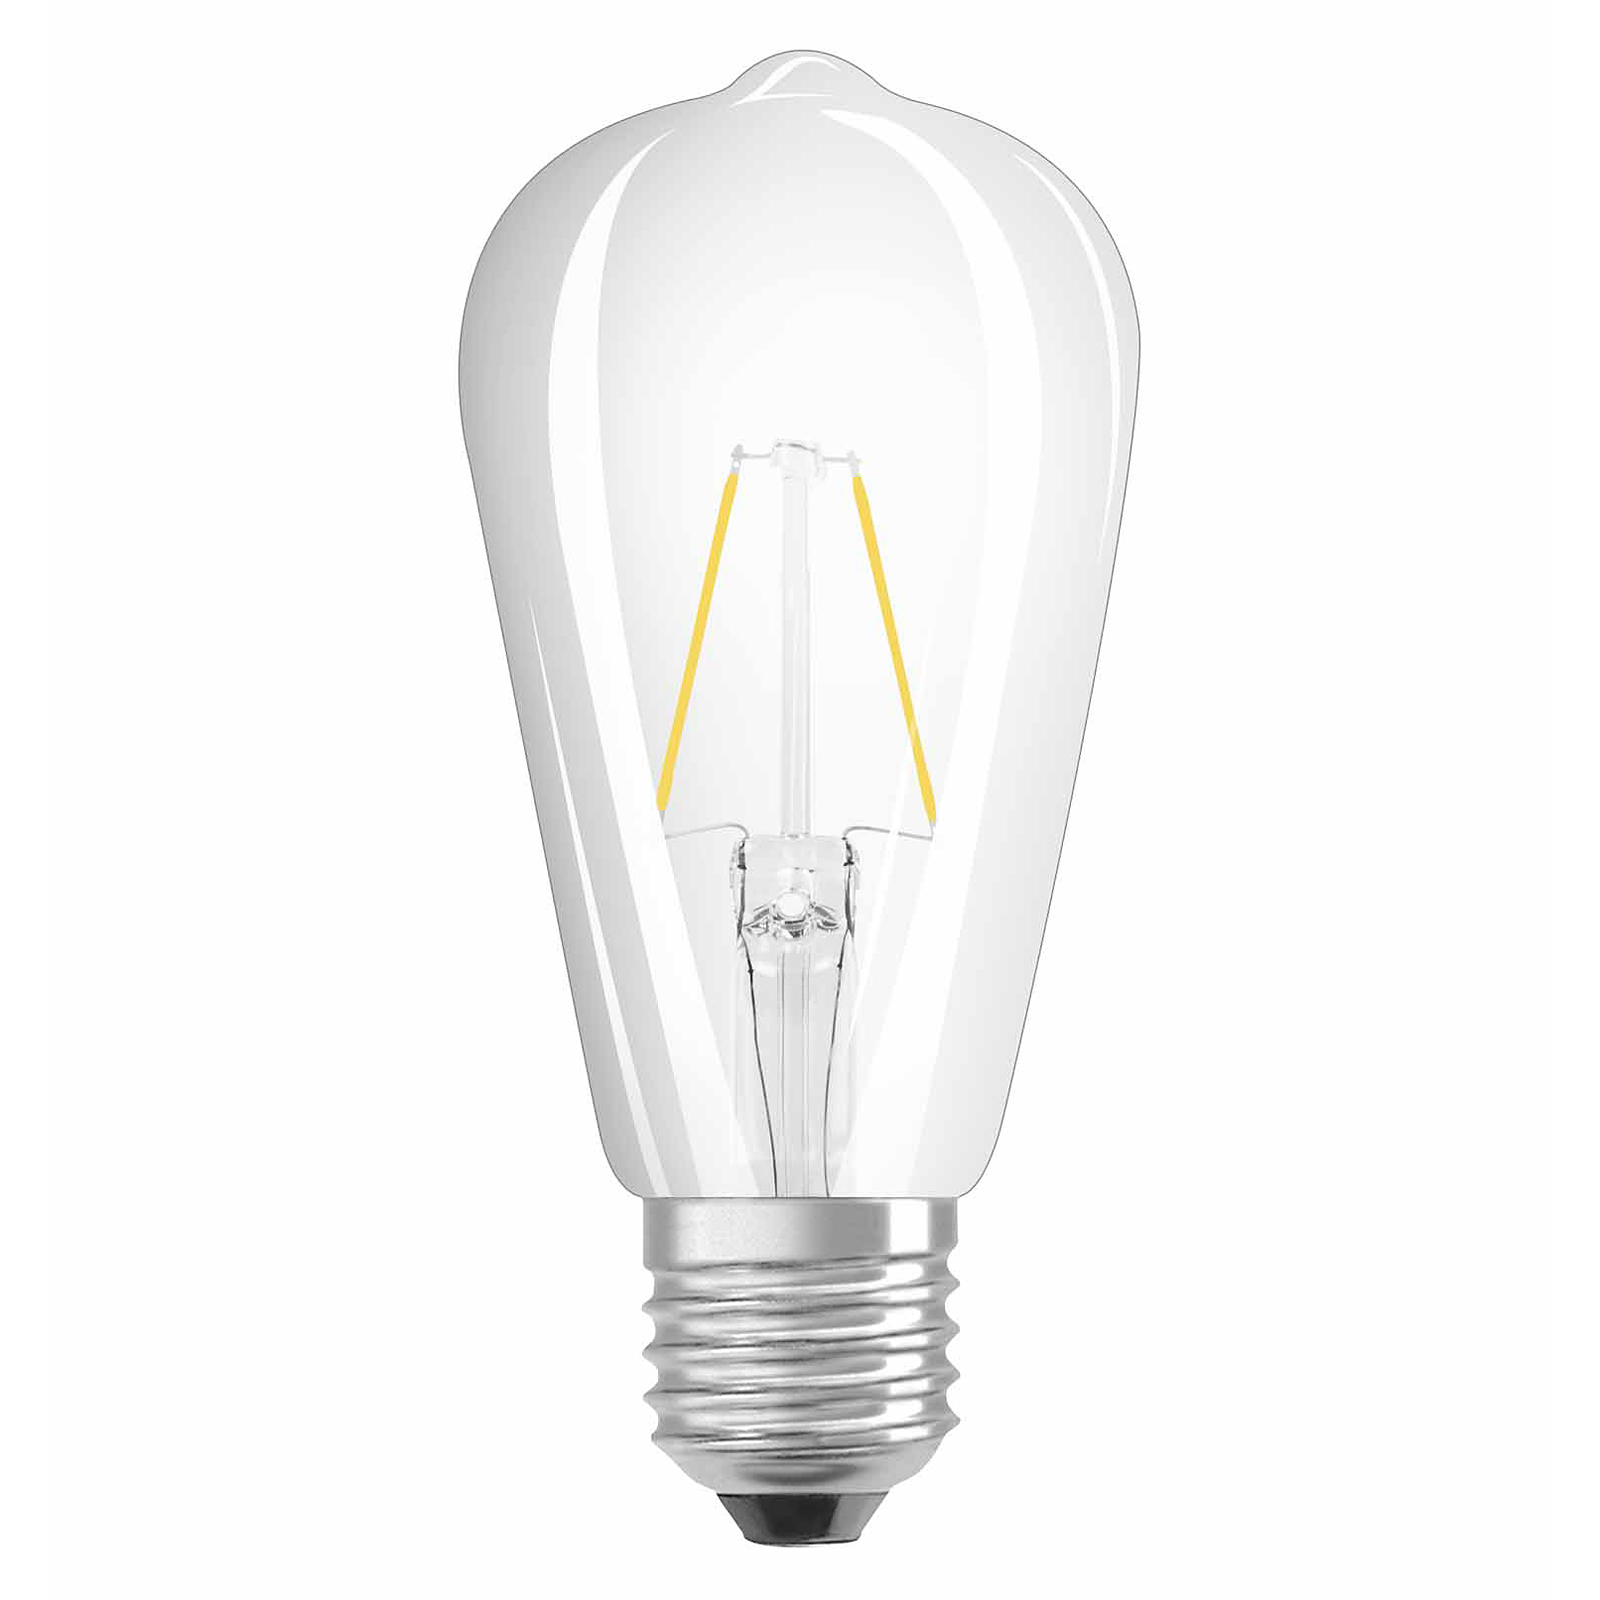 11015-OSRAM-LED-RETROFIT-CLASSIC-ST64-25-E27-2-Watt-wie-25-Watt-250-Lumen-warmweiss-1 Wunderbar Led Mr11 Gu4 Warmweiss Dekorationen